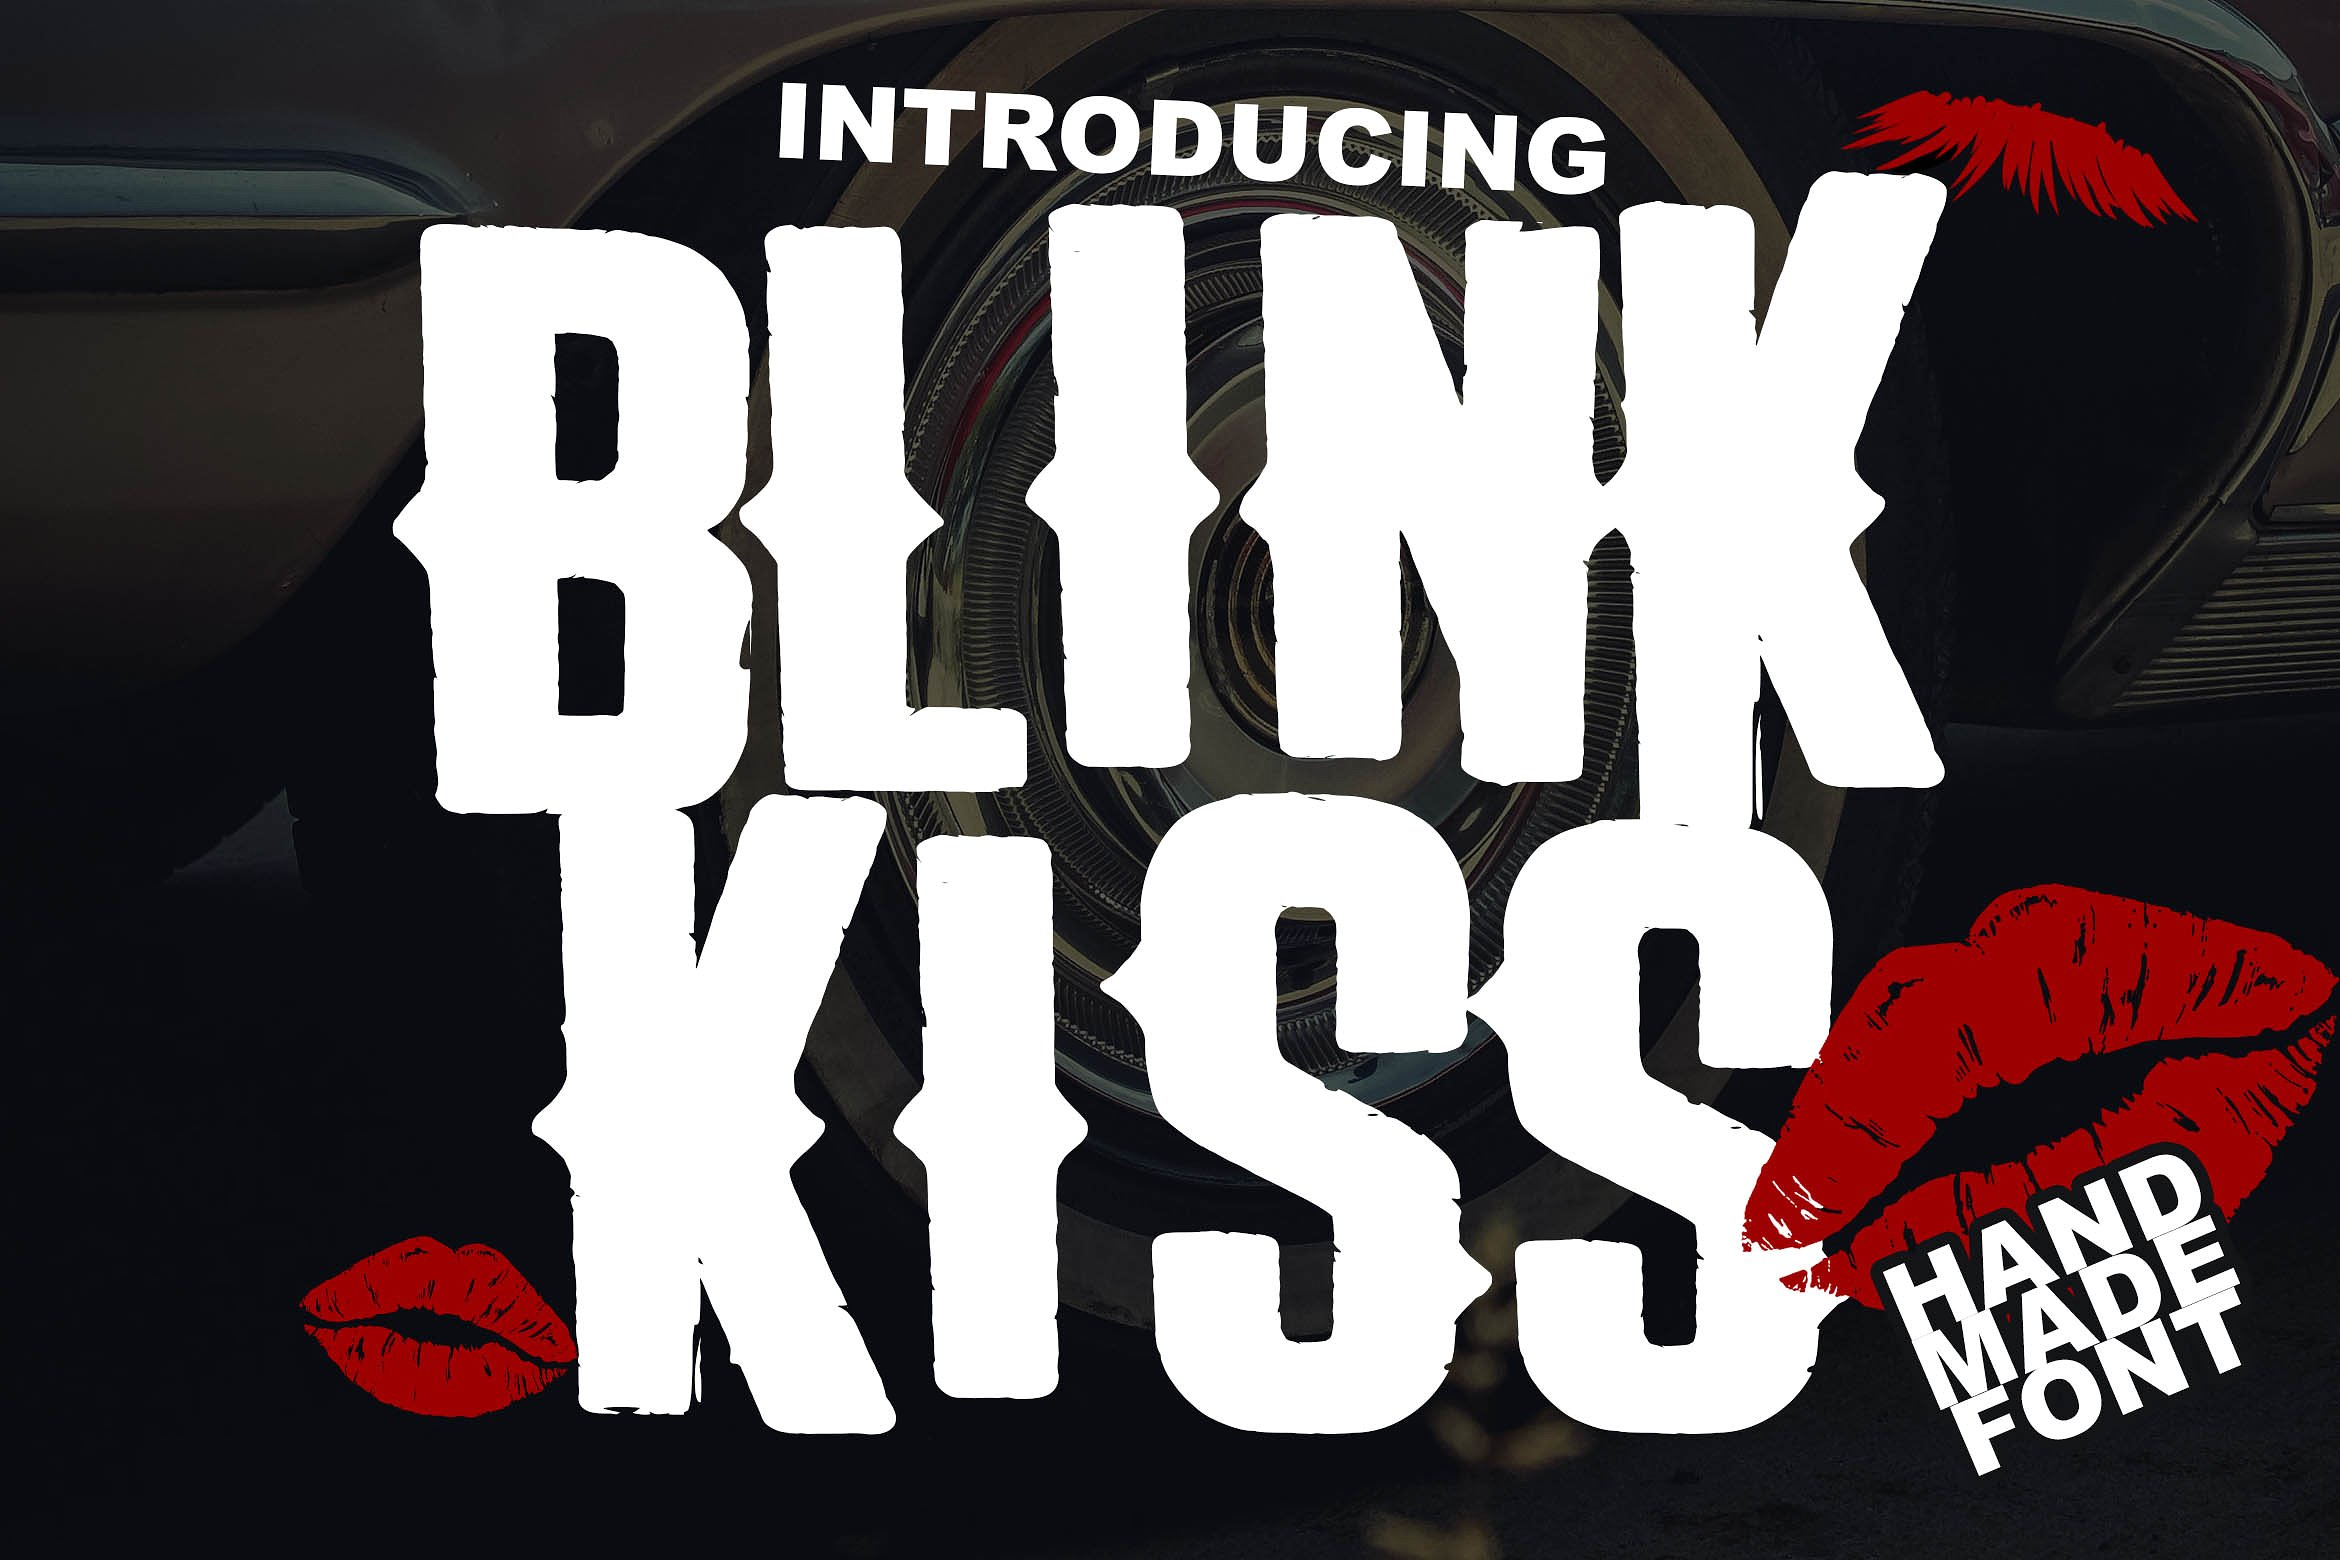 https://fontclarity.com/wp-content/uploads/2019/09/the-blink-kiss-logotype-font-download-0.jpg Free Download